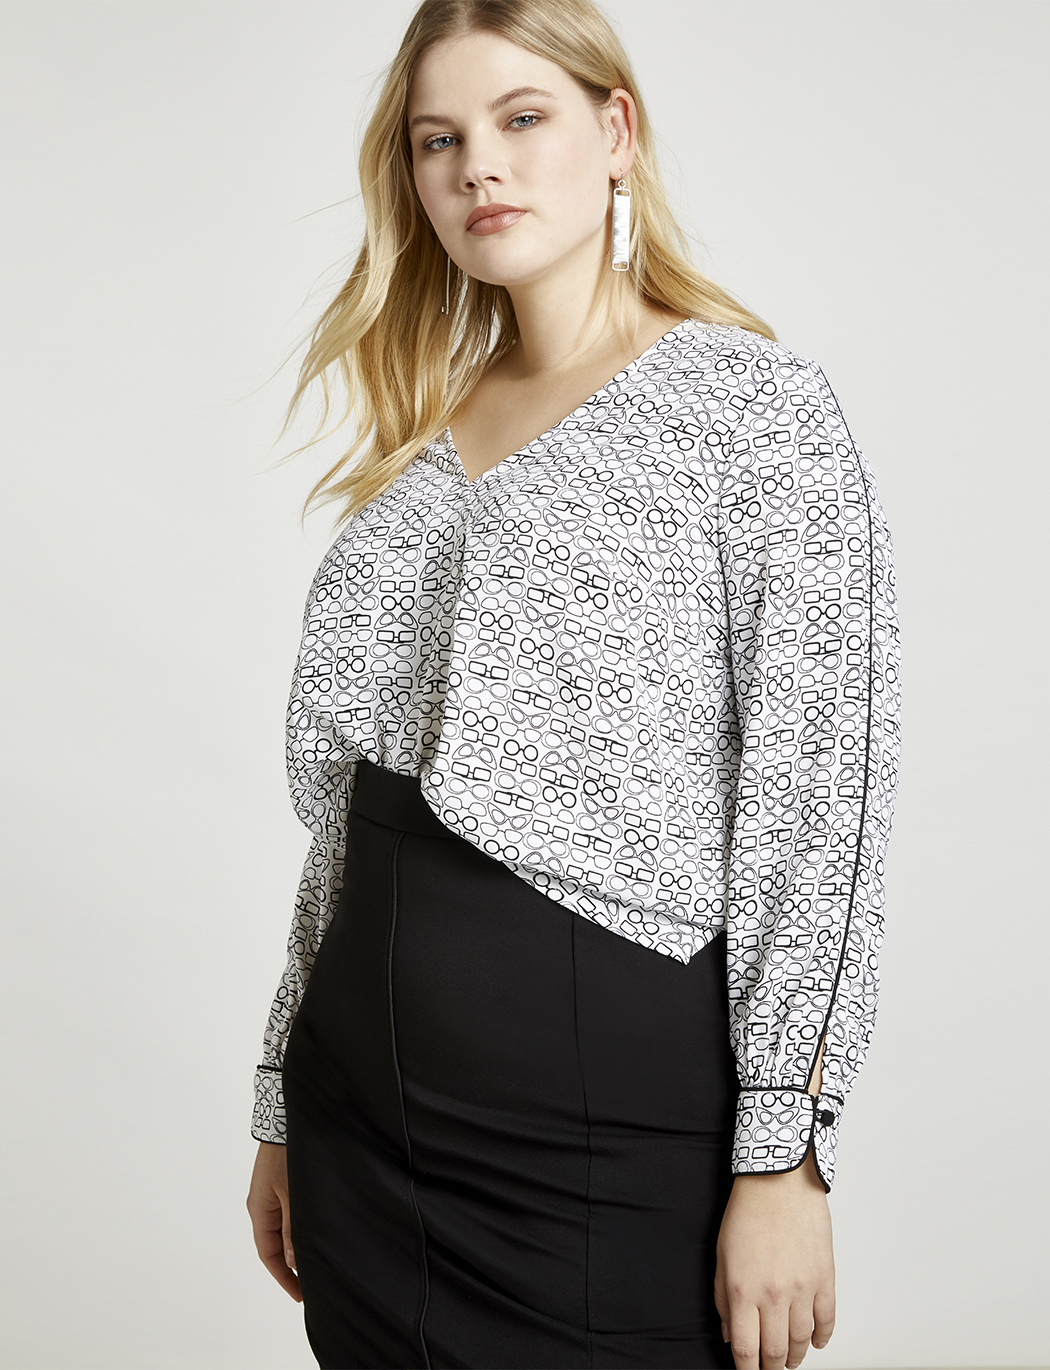 9-to-5 Pleat Front Top